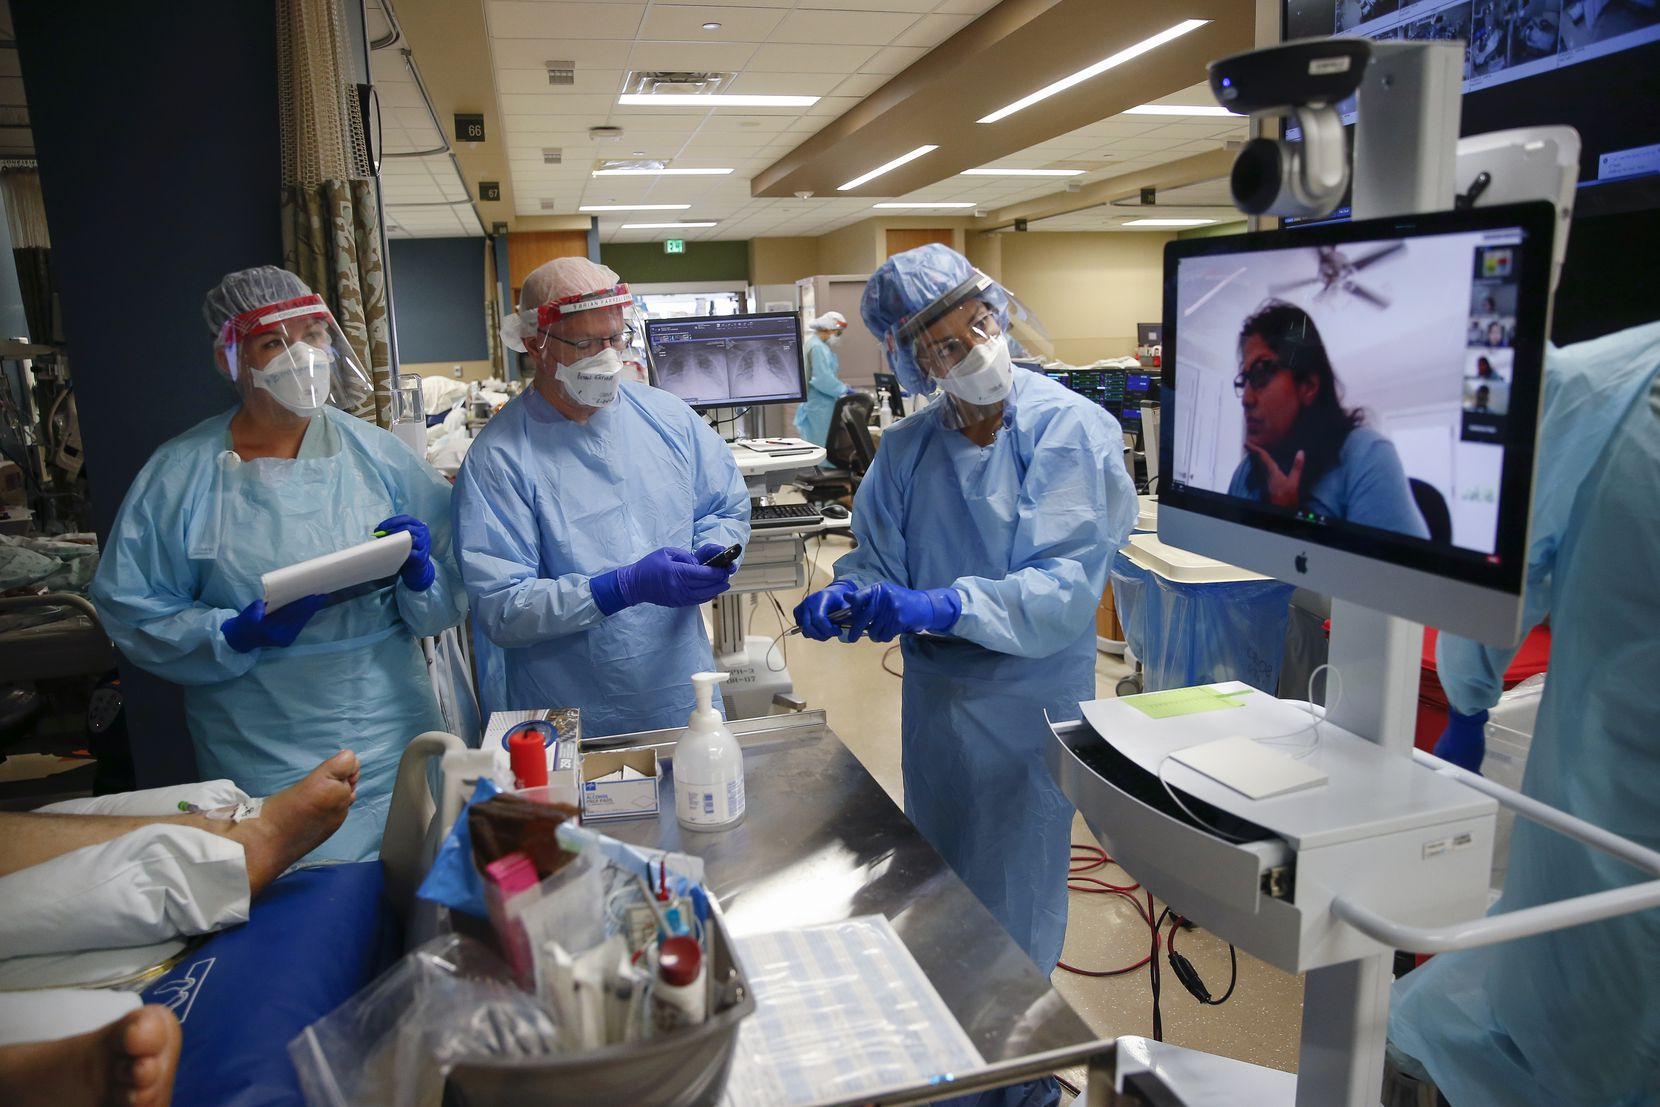 Respiratory therapist Morgan Davis (left) and Certified Registered Nurse Anesthetists Brian Farrell and Brittany O'Toole take notes as Dr. Padmaja Reddy (on-screen) virtually assists in a round of checks on coronavirus patients at Parkland Memorial Hospital.